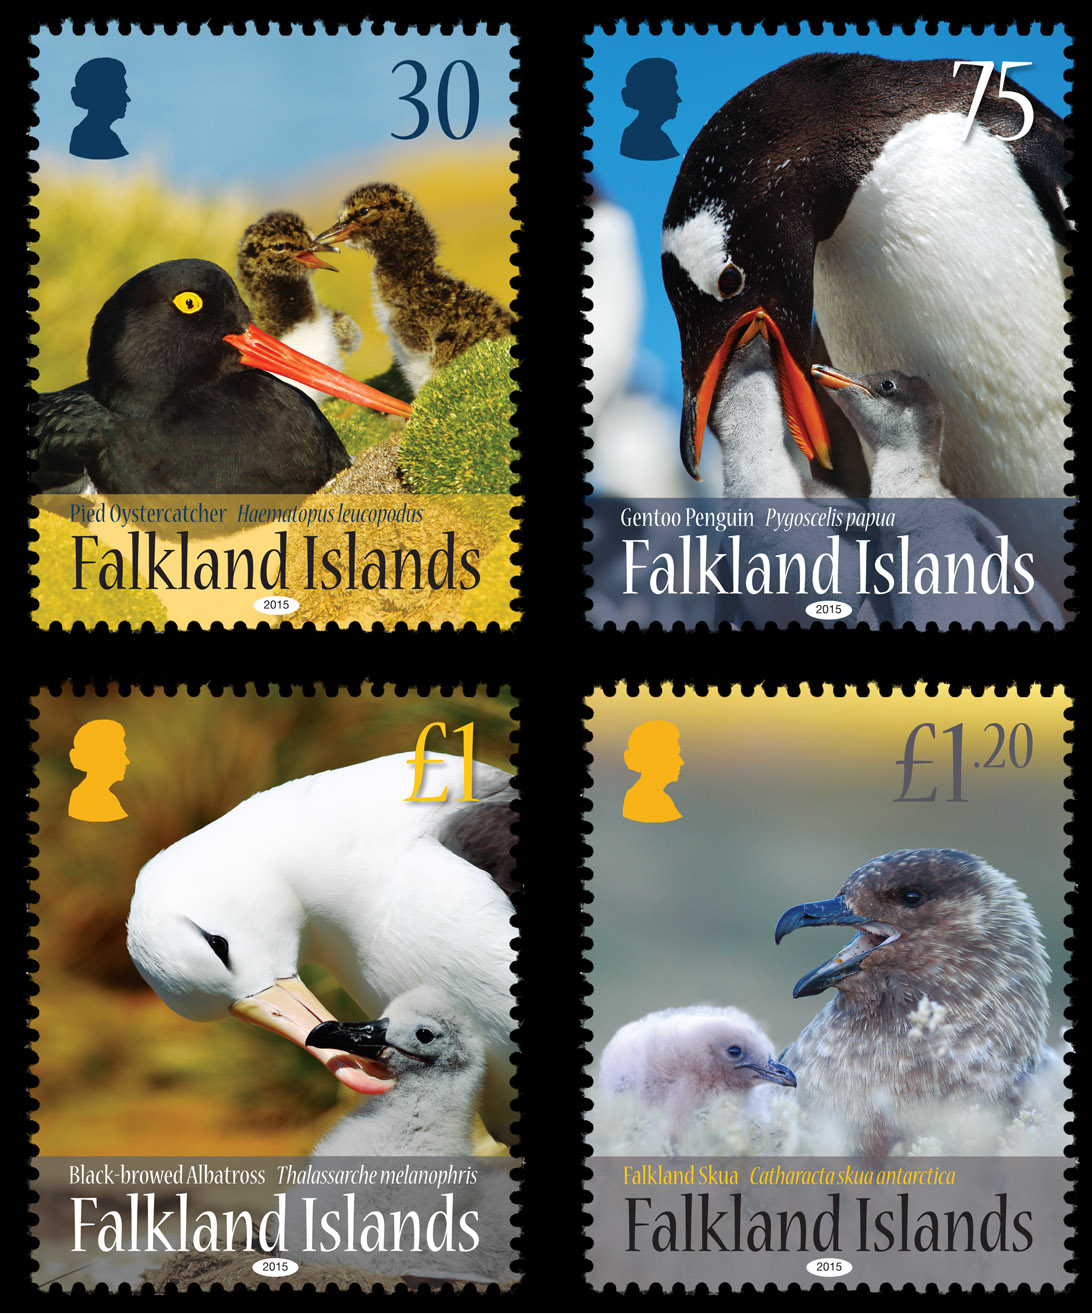 Falkland_Islands_Birds_and_Young_Set_2015_a.jpg